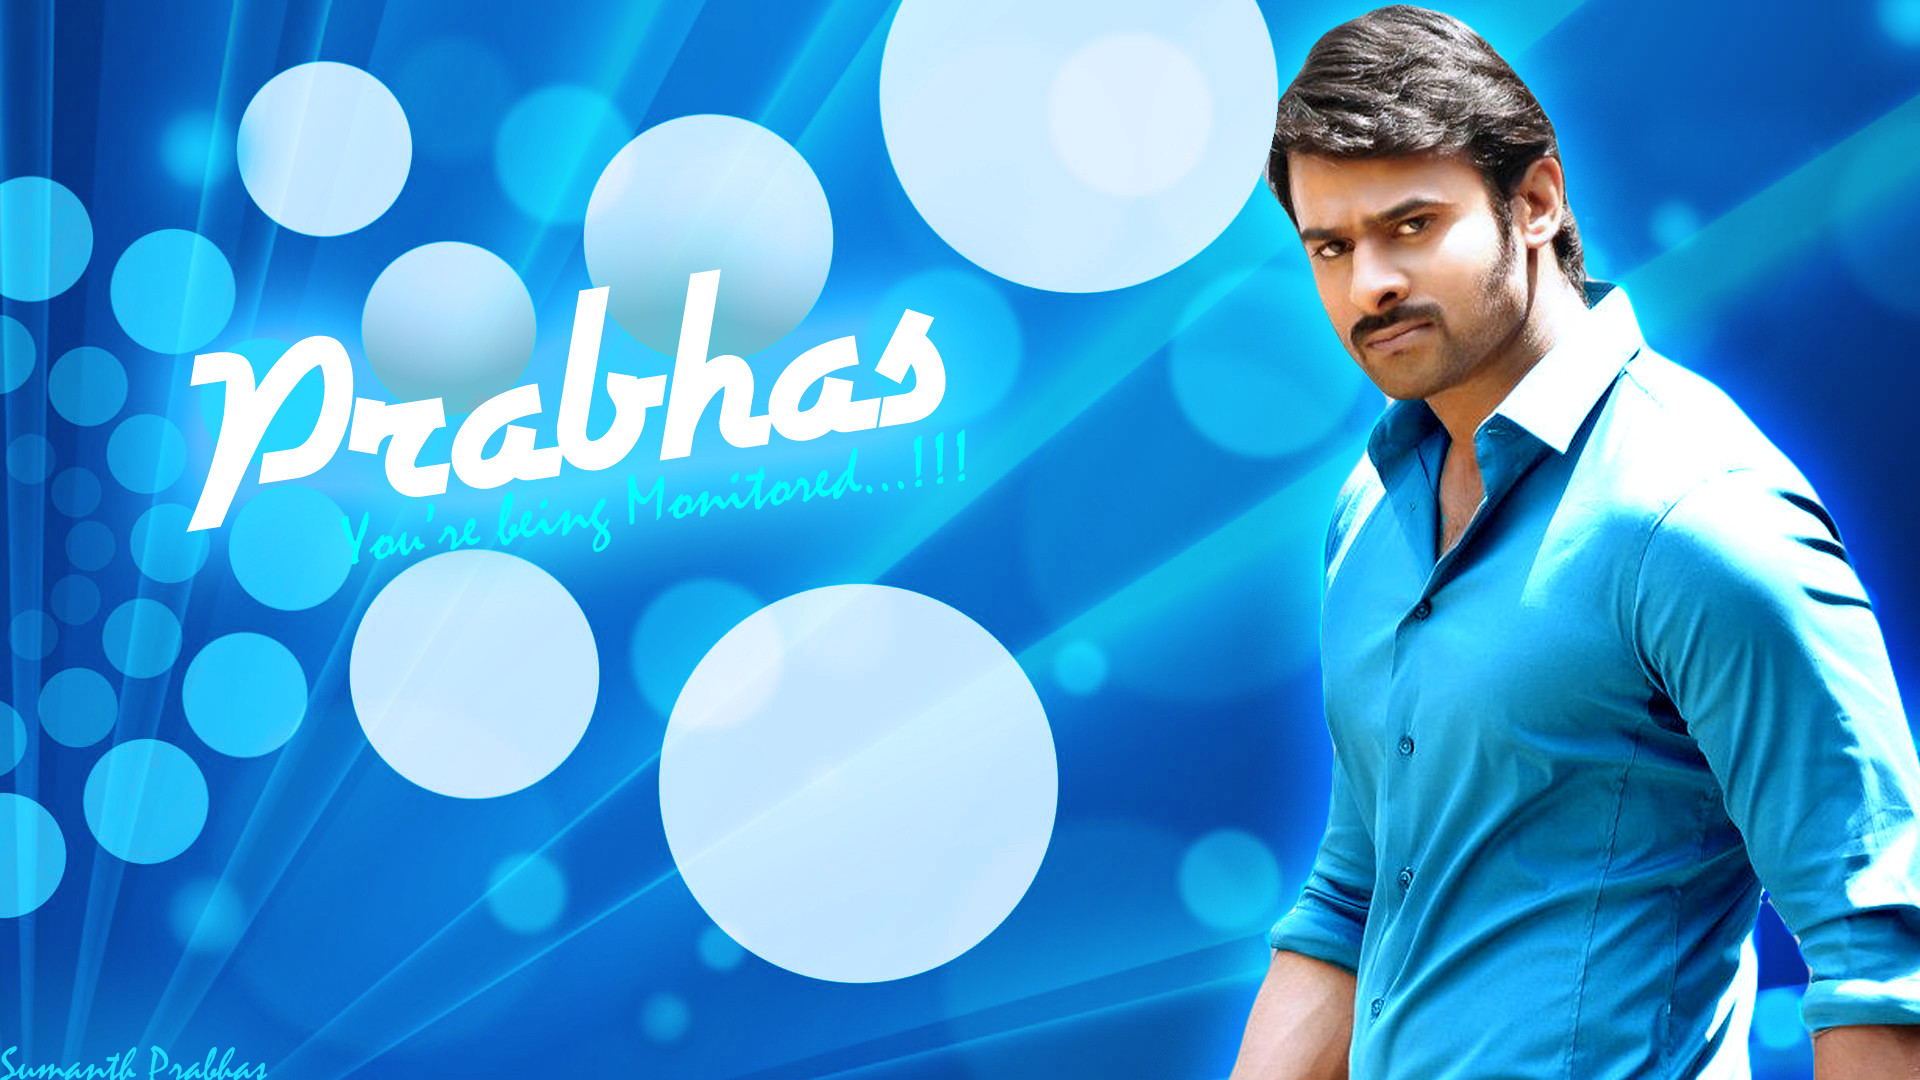 Prabhas Wallpapers High Resolution And Quality Download - 1920x1080 ...